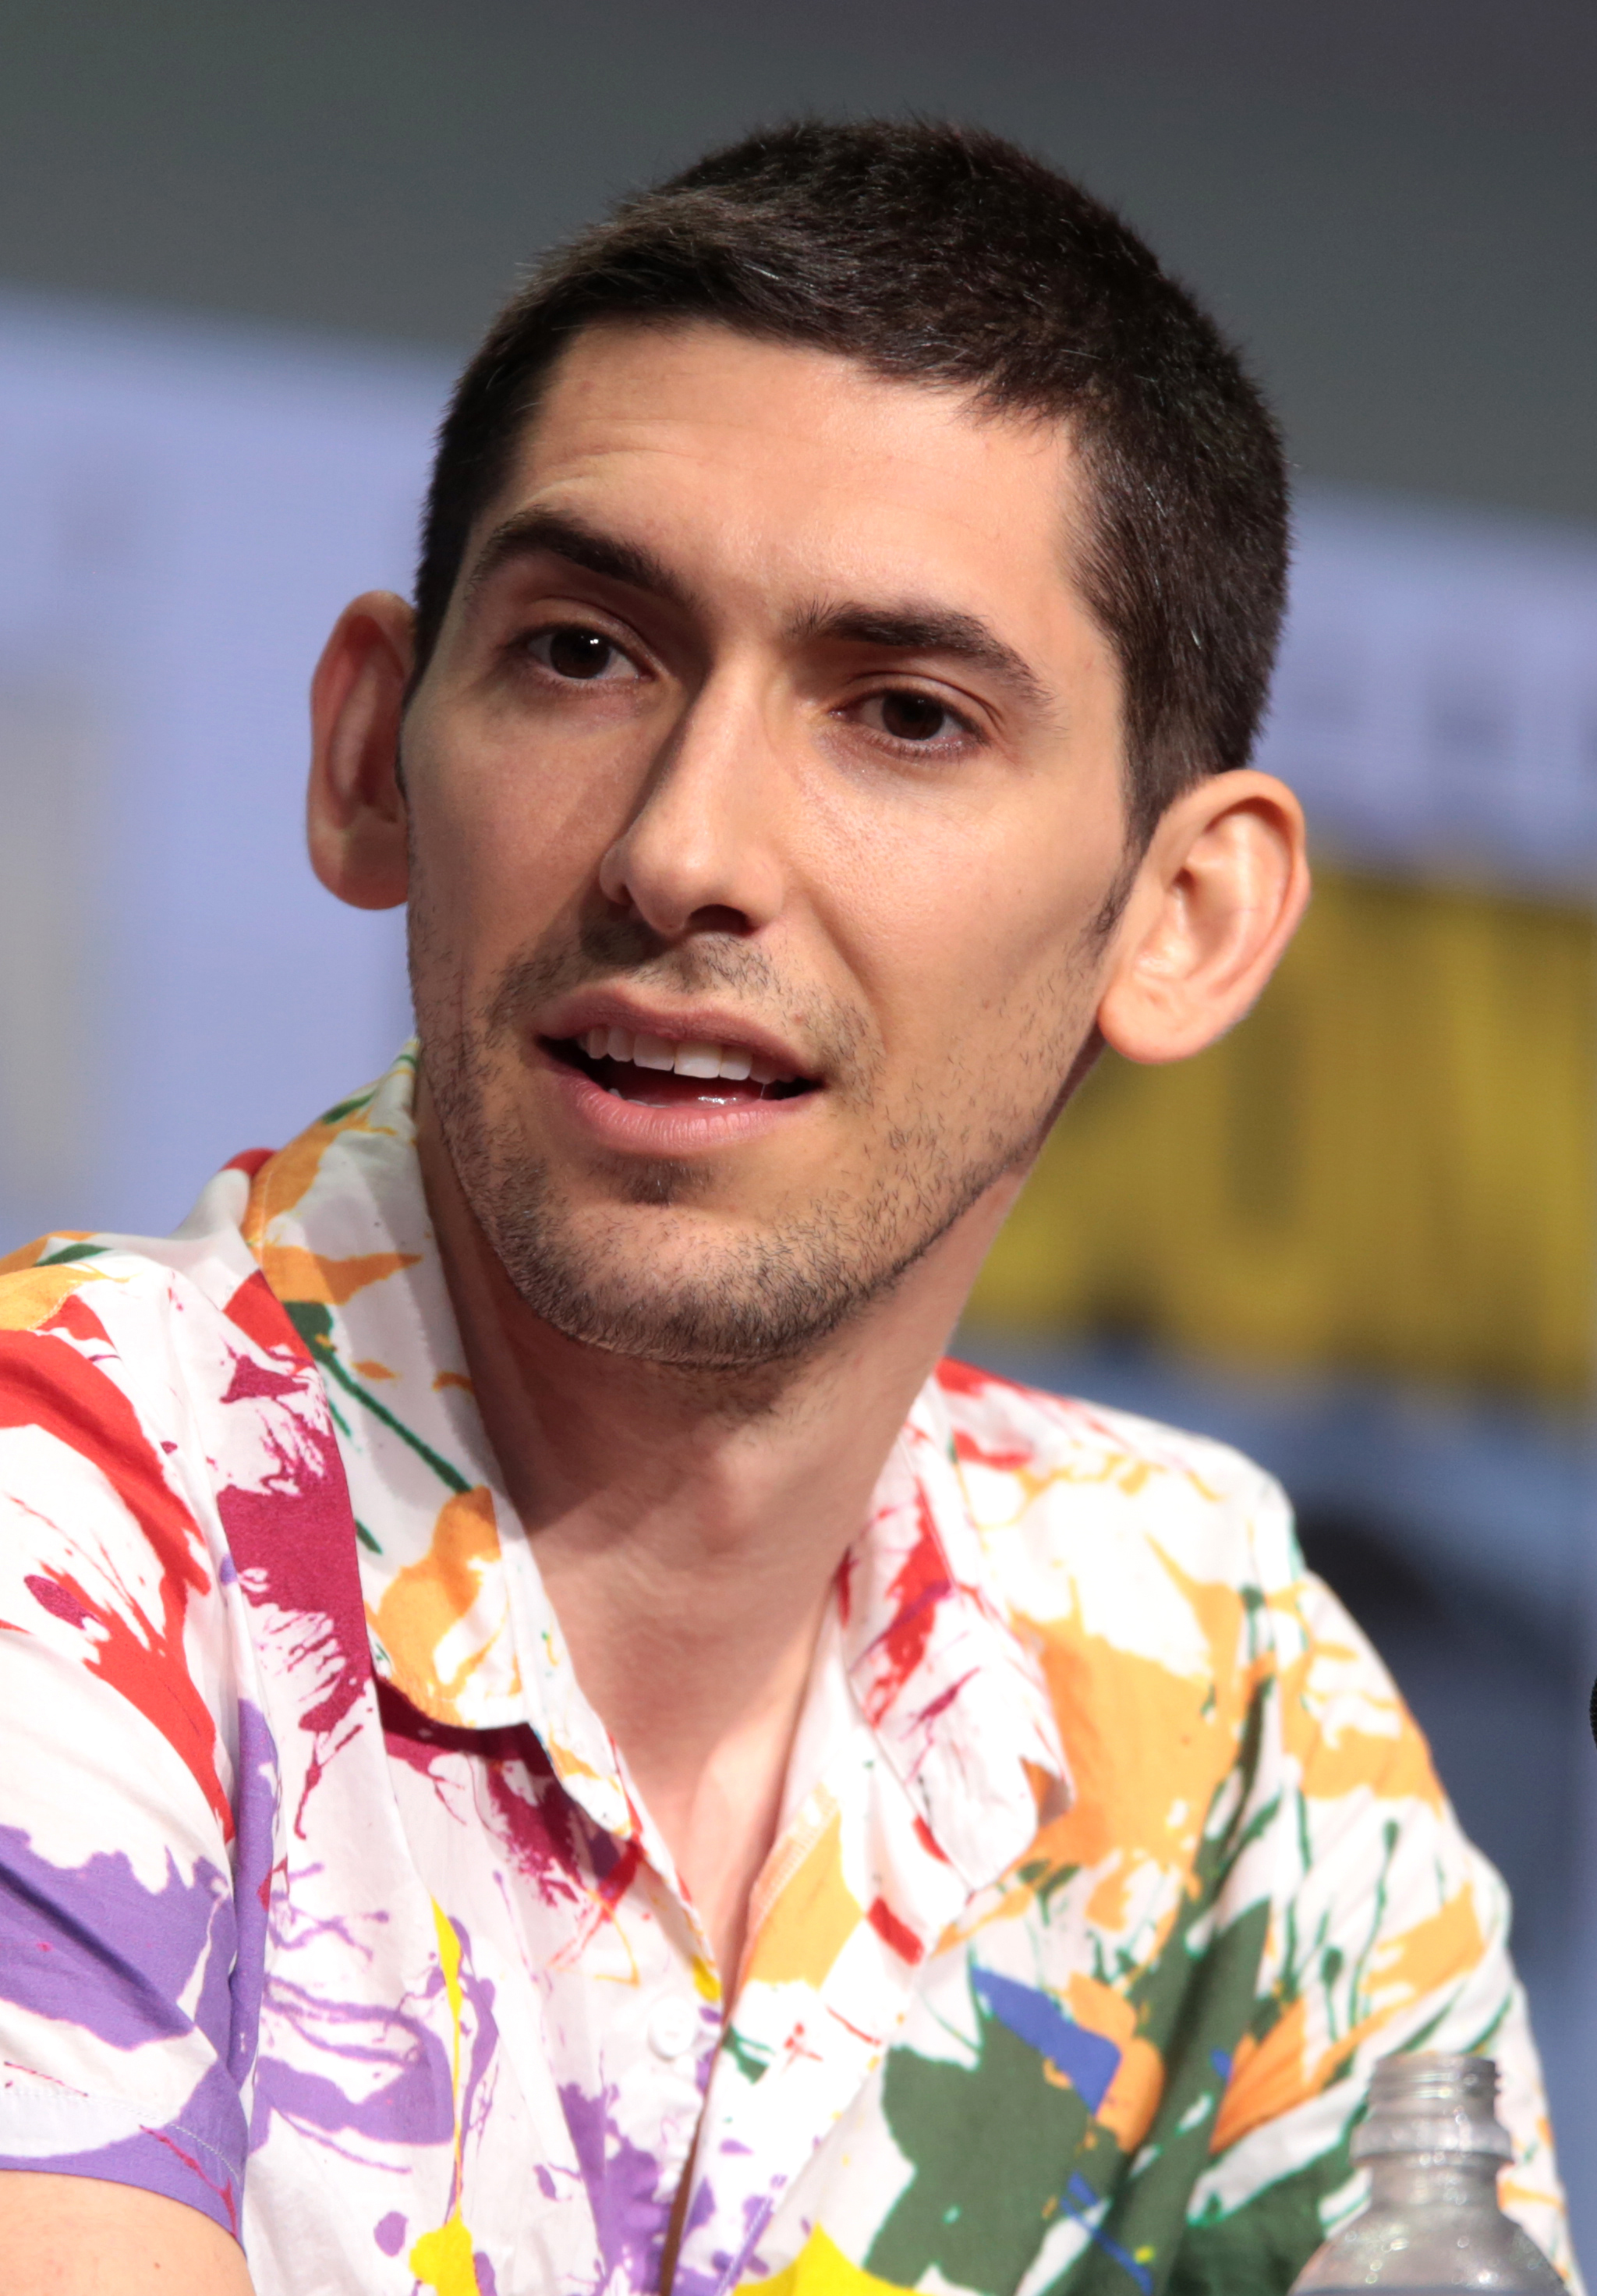 The 33-year old son of father John Landis and mother Deborah Nadoolman Landis Max Landis in 2018 photo. Max Landis earned a  million dollar salary - leaving the net worth at 2 million in 2018